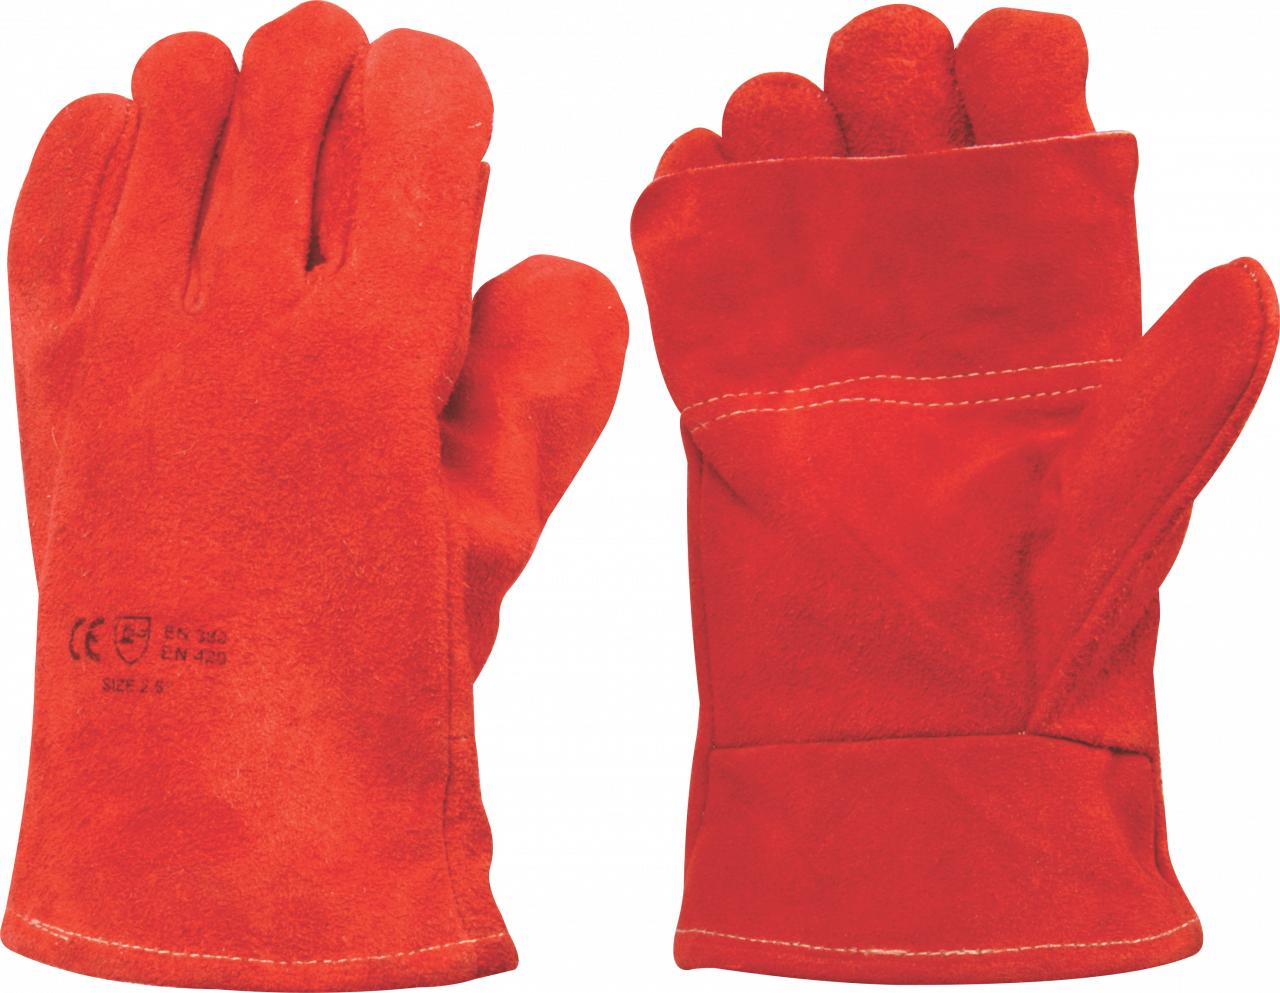 Leather Glove Heat Red Cuff 2.5 inch